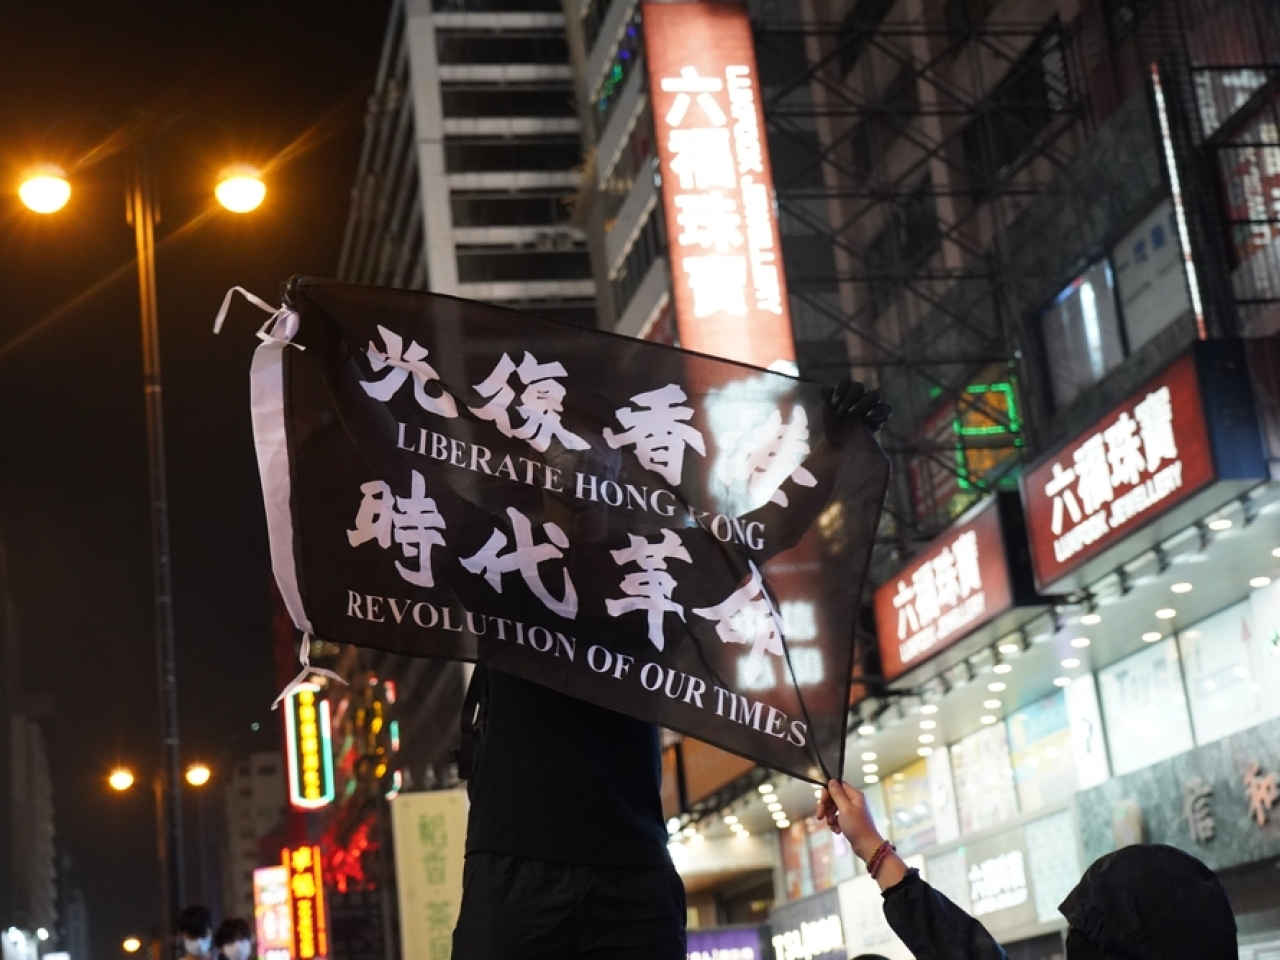 A Lingnan University professor told the High Court that you don't have to be a historian to understand what the words 'liberate' and 'revolution' mean. Image: Shutterstock